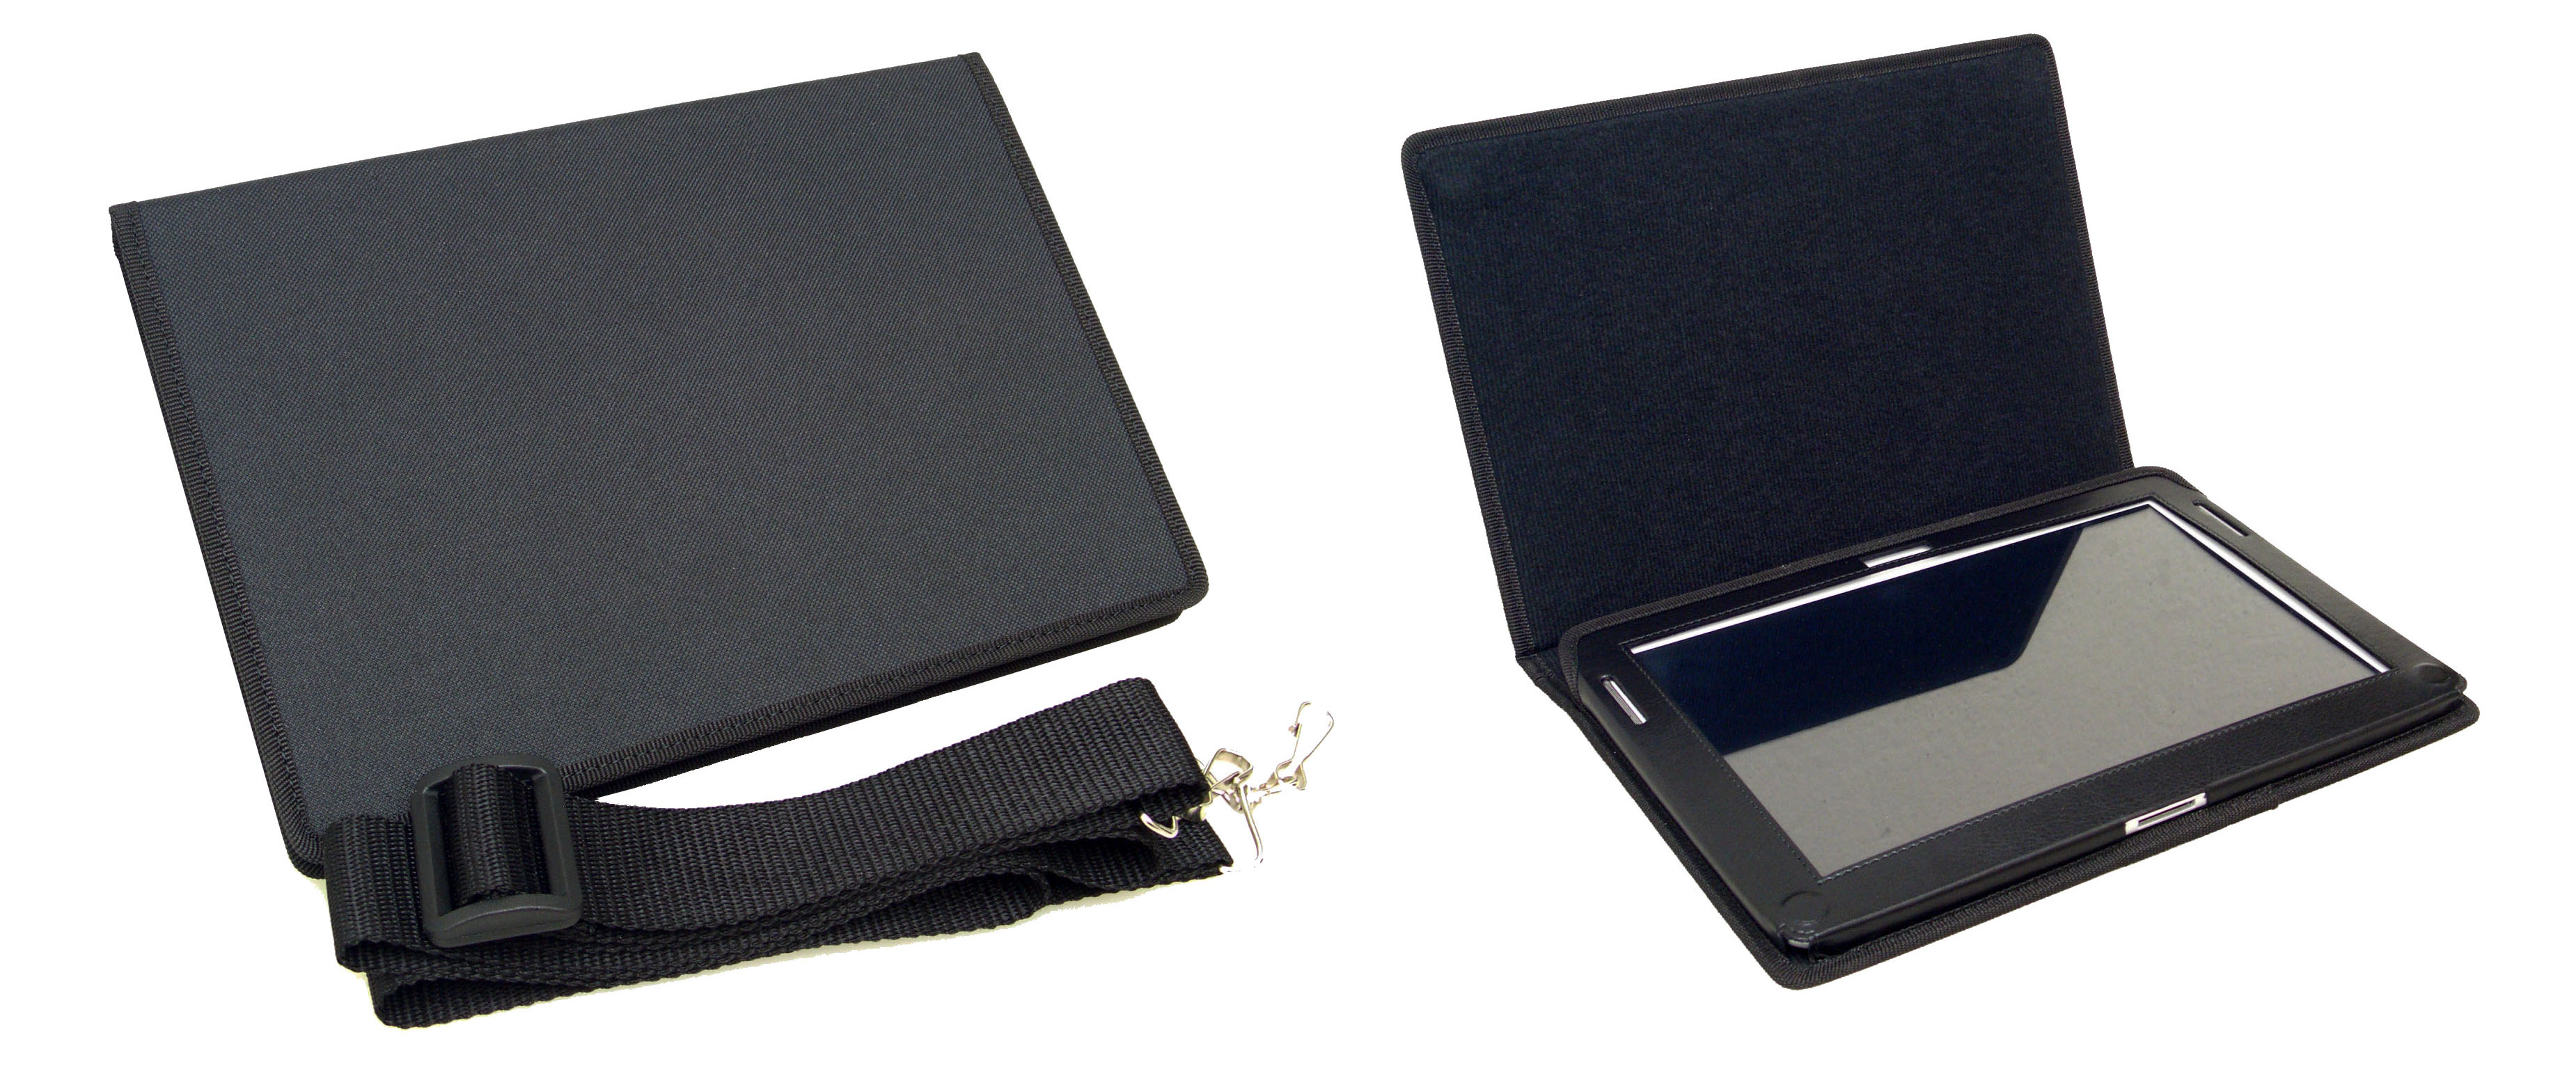 Samsung Galaxy Note 10 tablet case Melgar for industrial or commercial use